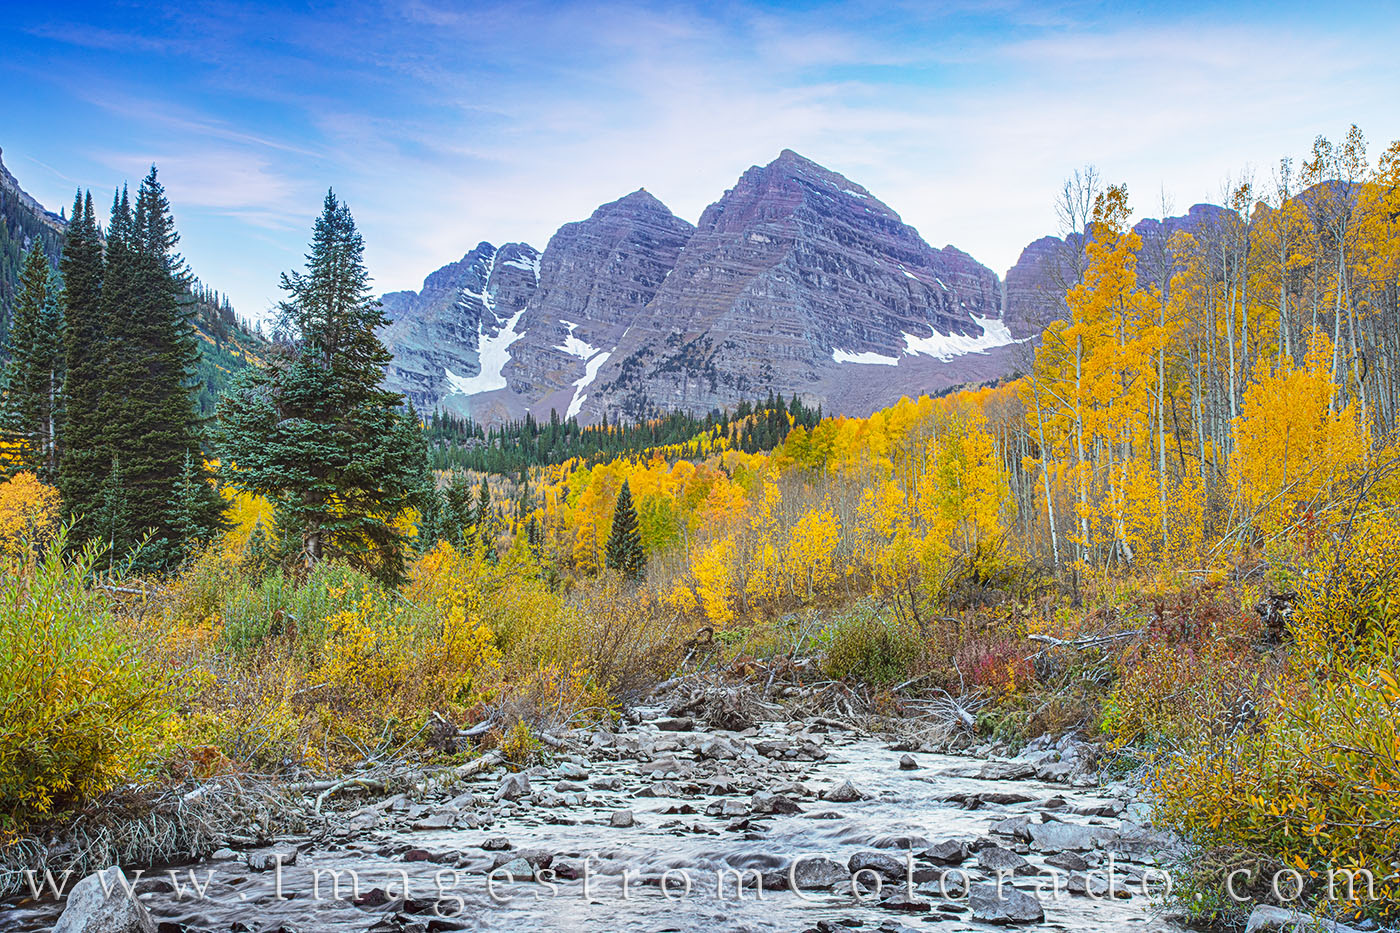 West Maroon Creek flows down from the higher elevations as the Maroon Bells Wilderness area shows off its fall colors. In the...